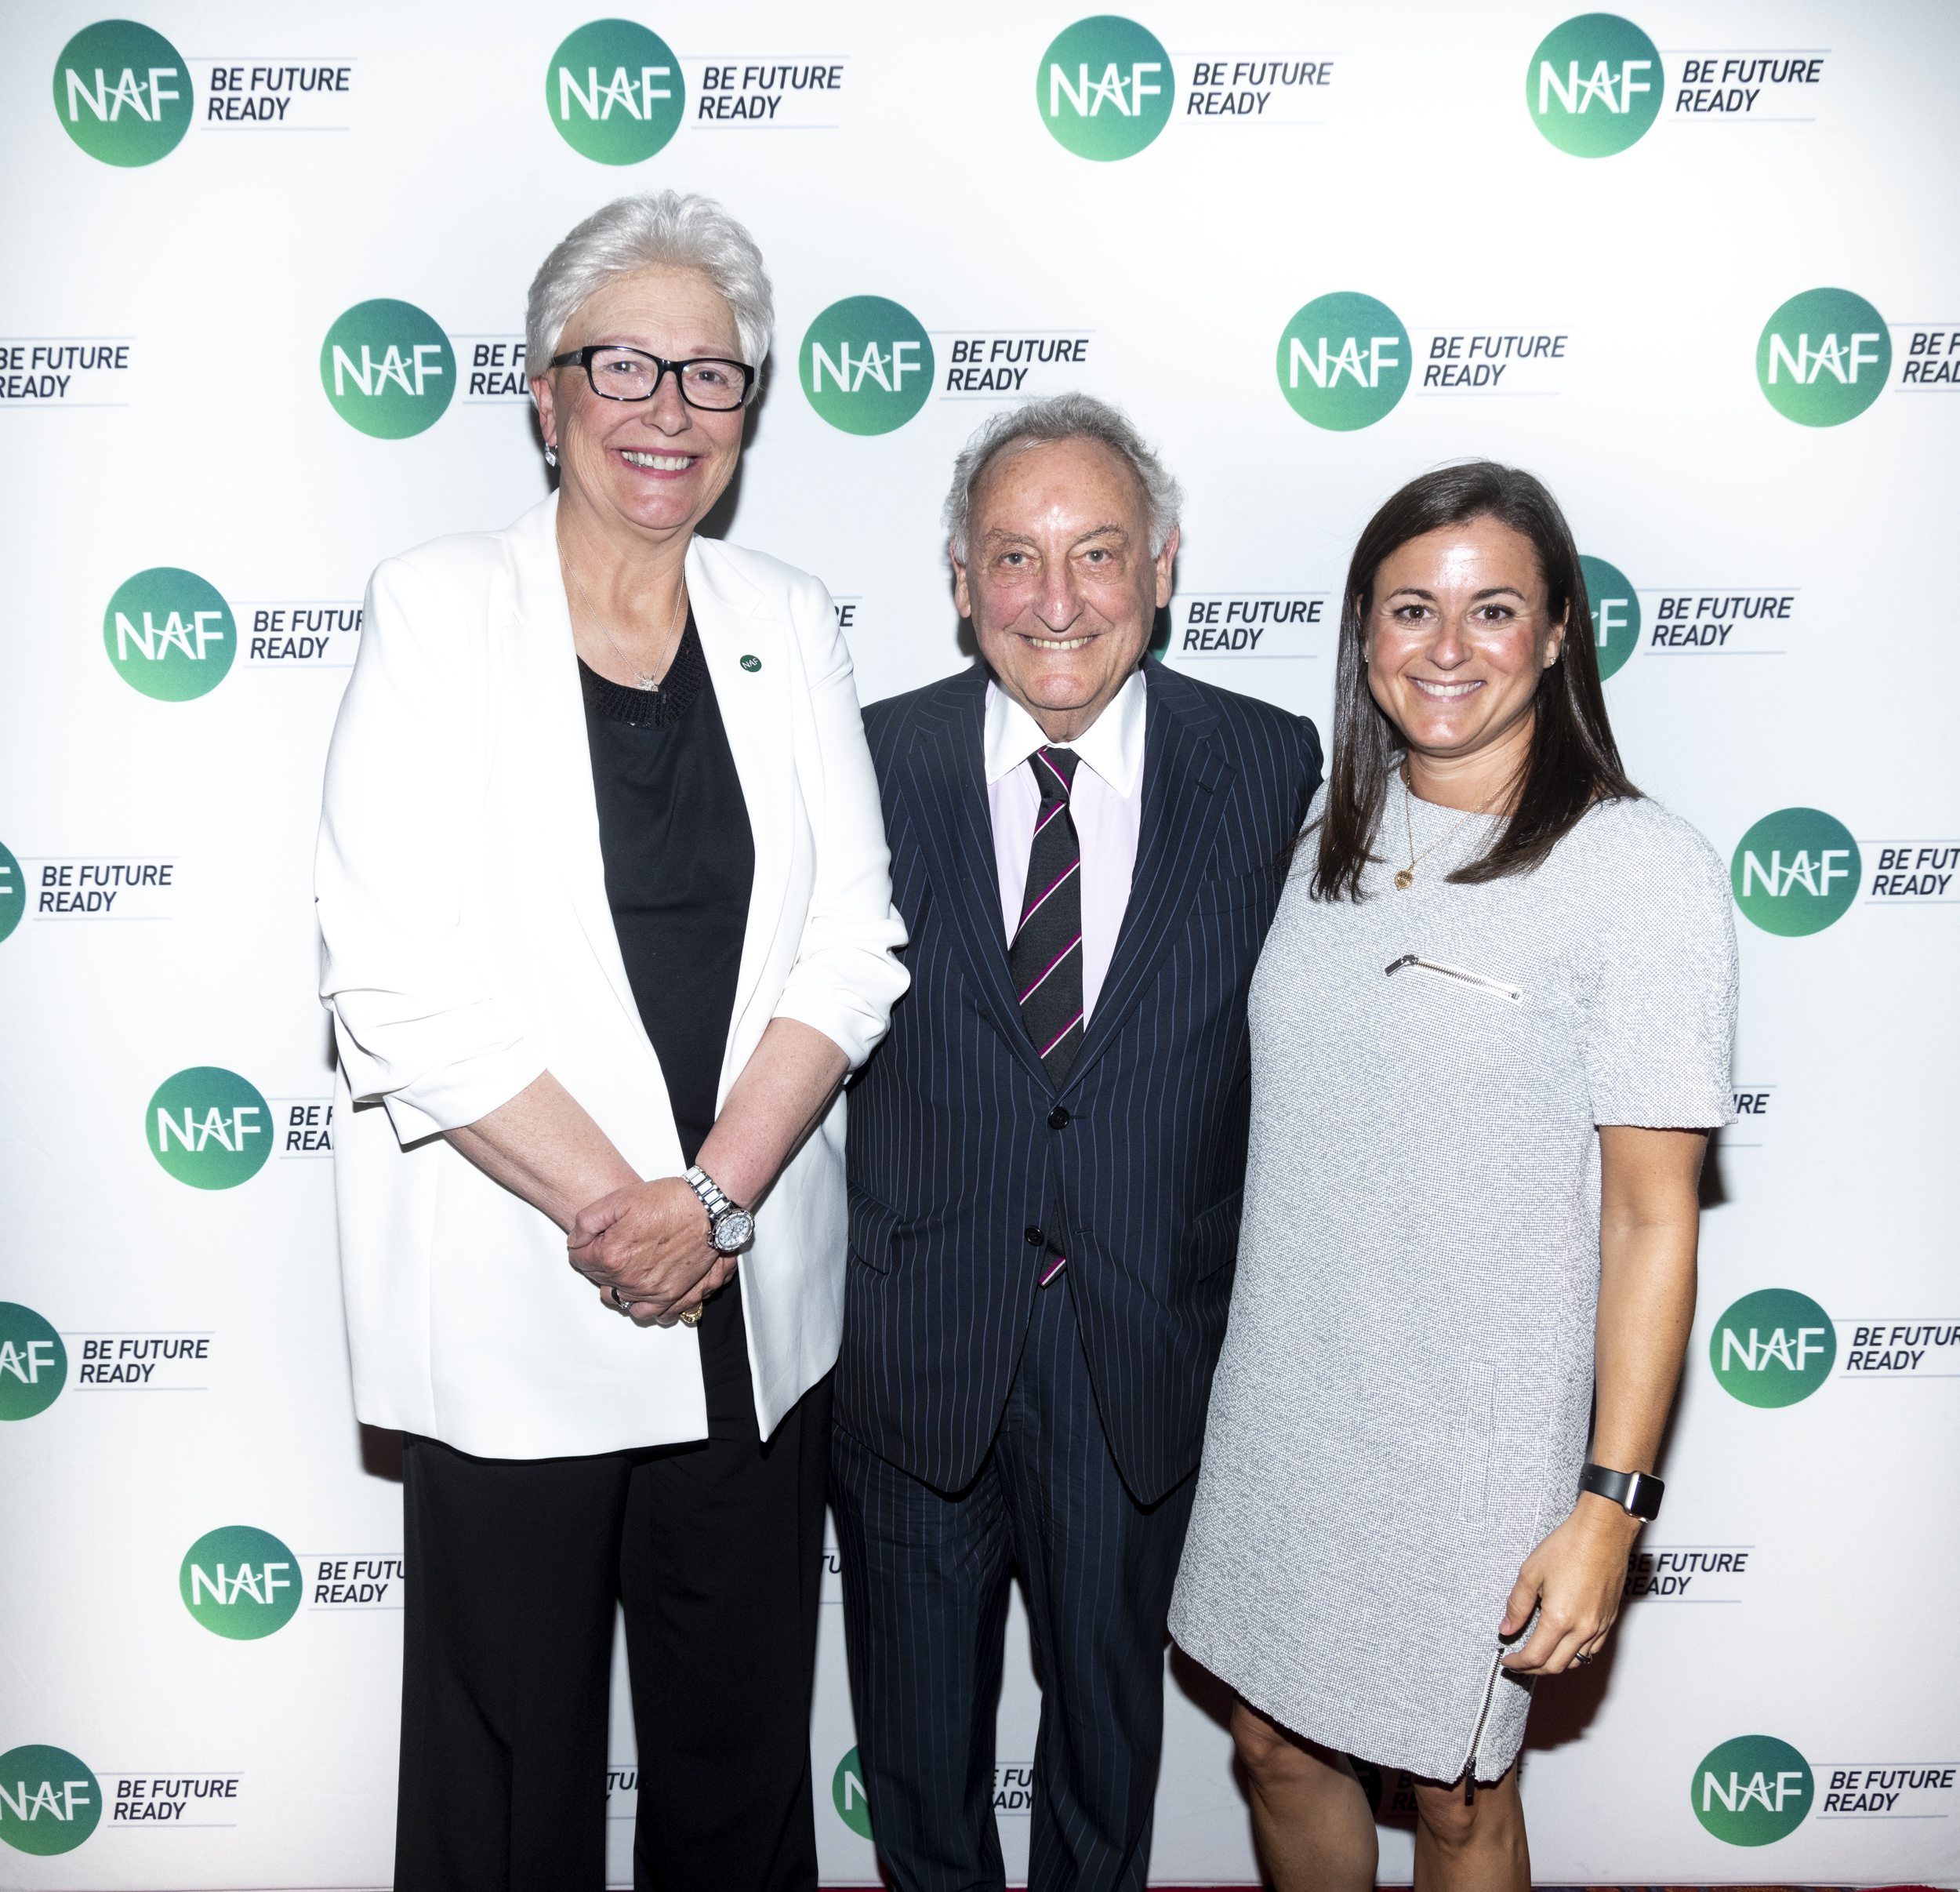 Chief Executive Officer of NAF, JD Hoye, Founder and Chairman of NAF, Sandy Weill, and President of NAF, Lisa Dughi